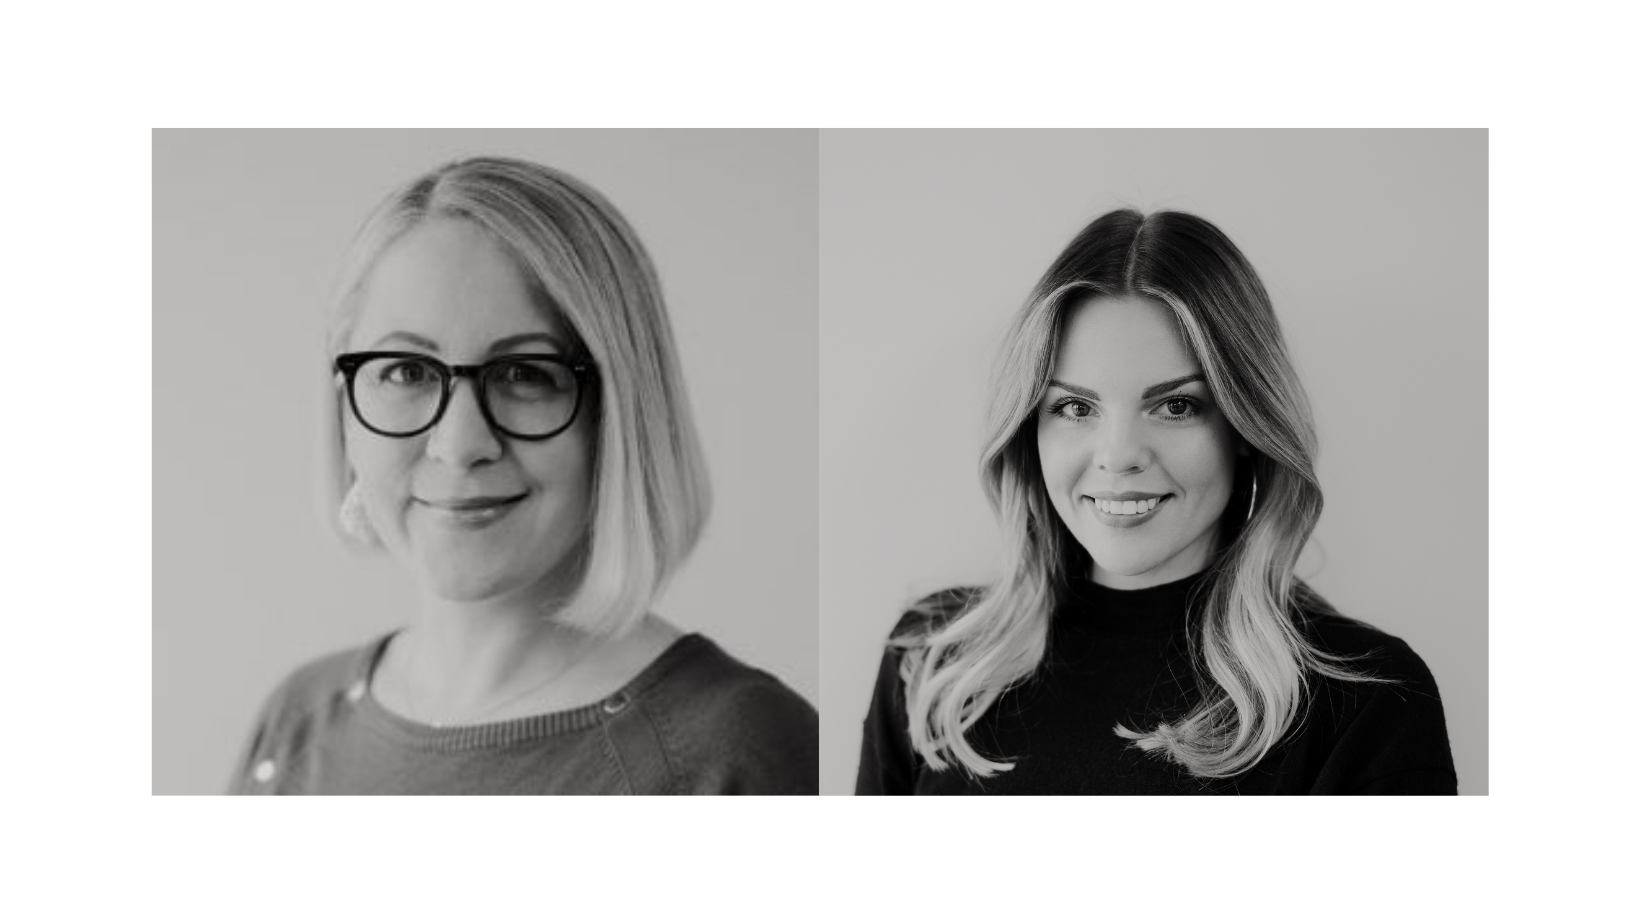 Red Rat appoints Chemistry to lead its brand strategy and creative after a three-way pitch